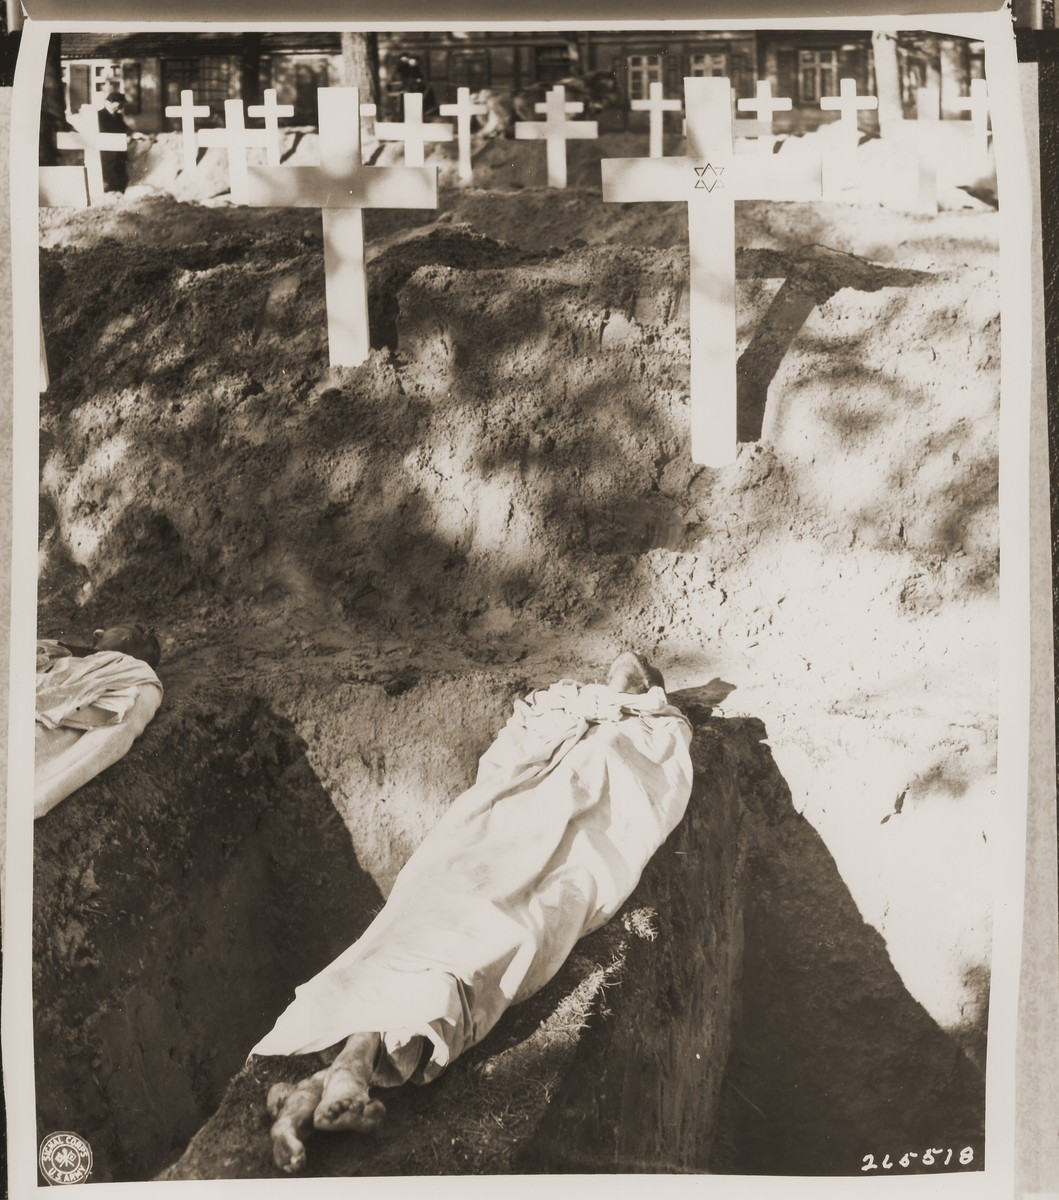 The corpse of a prisoner who died in the concentration camp at Woebbelin lies next to an open grave.    The star of David indicates that this was a Jewish prisoner.  The townspeople were forced by U.S. troops to bury the corpses on the palace grounds of the Archduke of Mecklenburg.